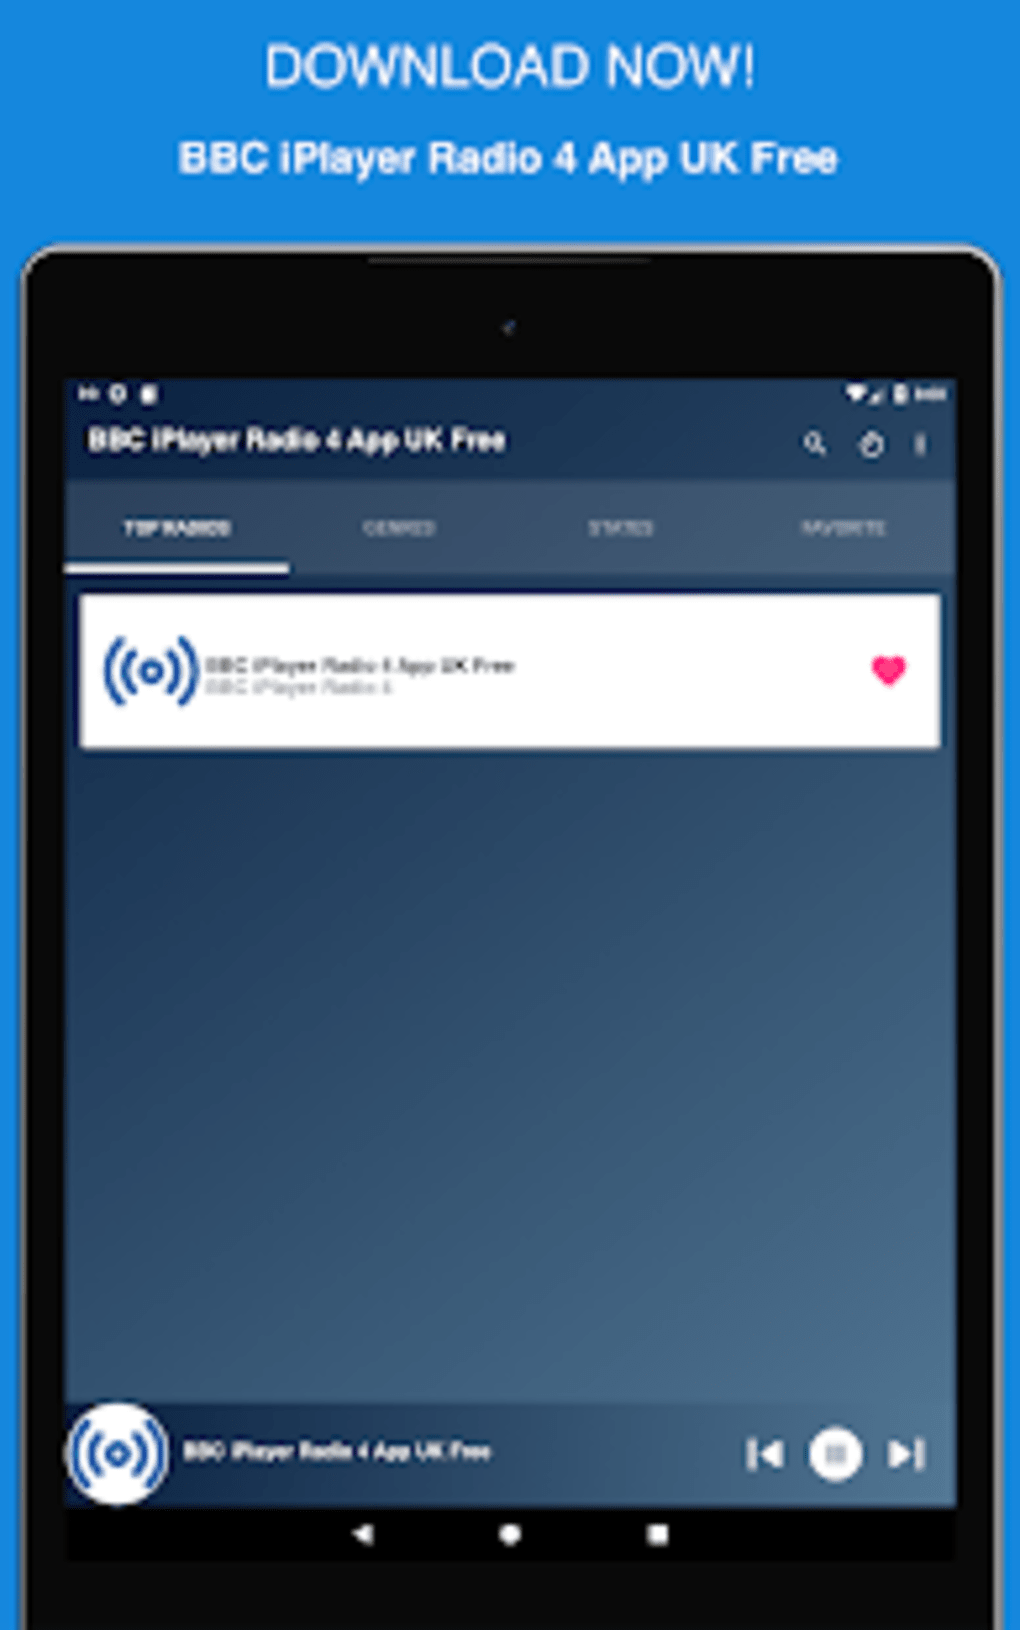 BBC iPlayer Radio 4 App UK Free for Android - Download